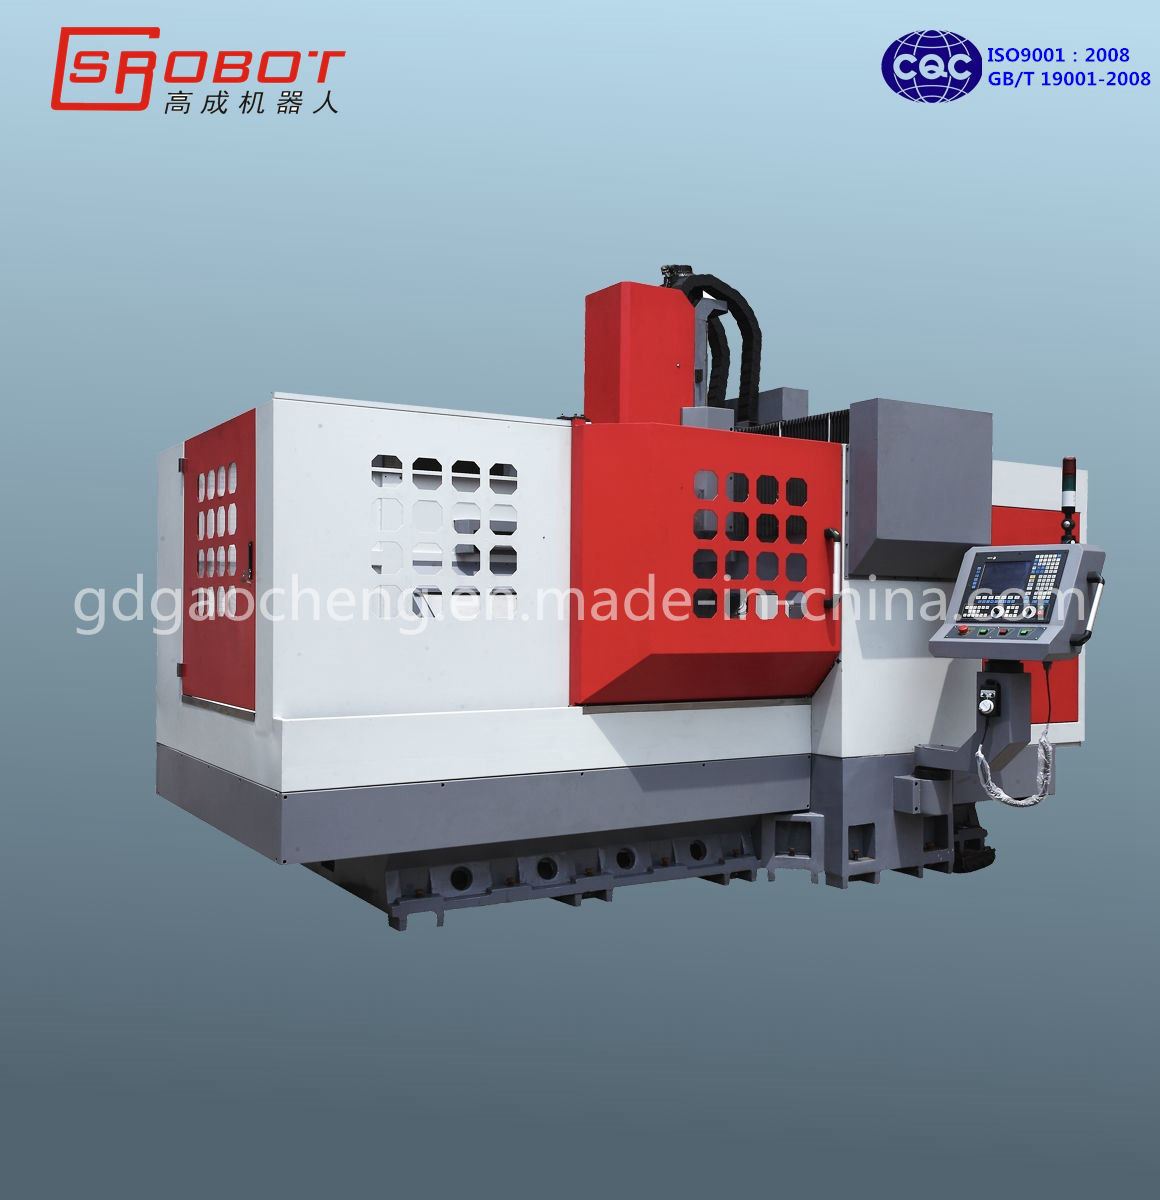 Large Traverses CNC Machine Center